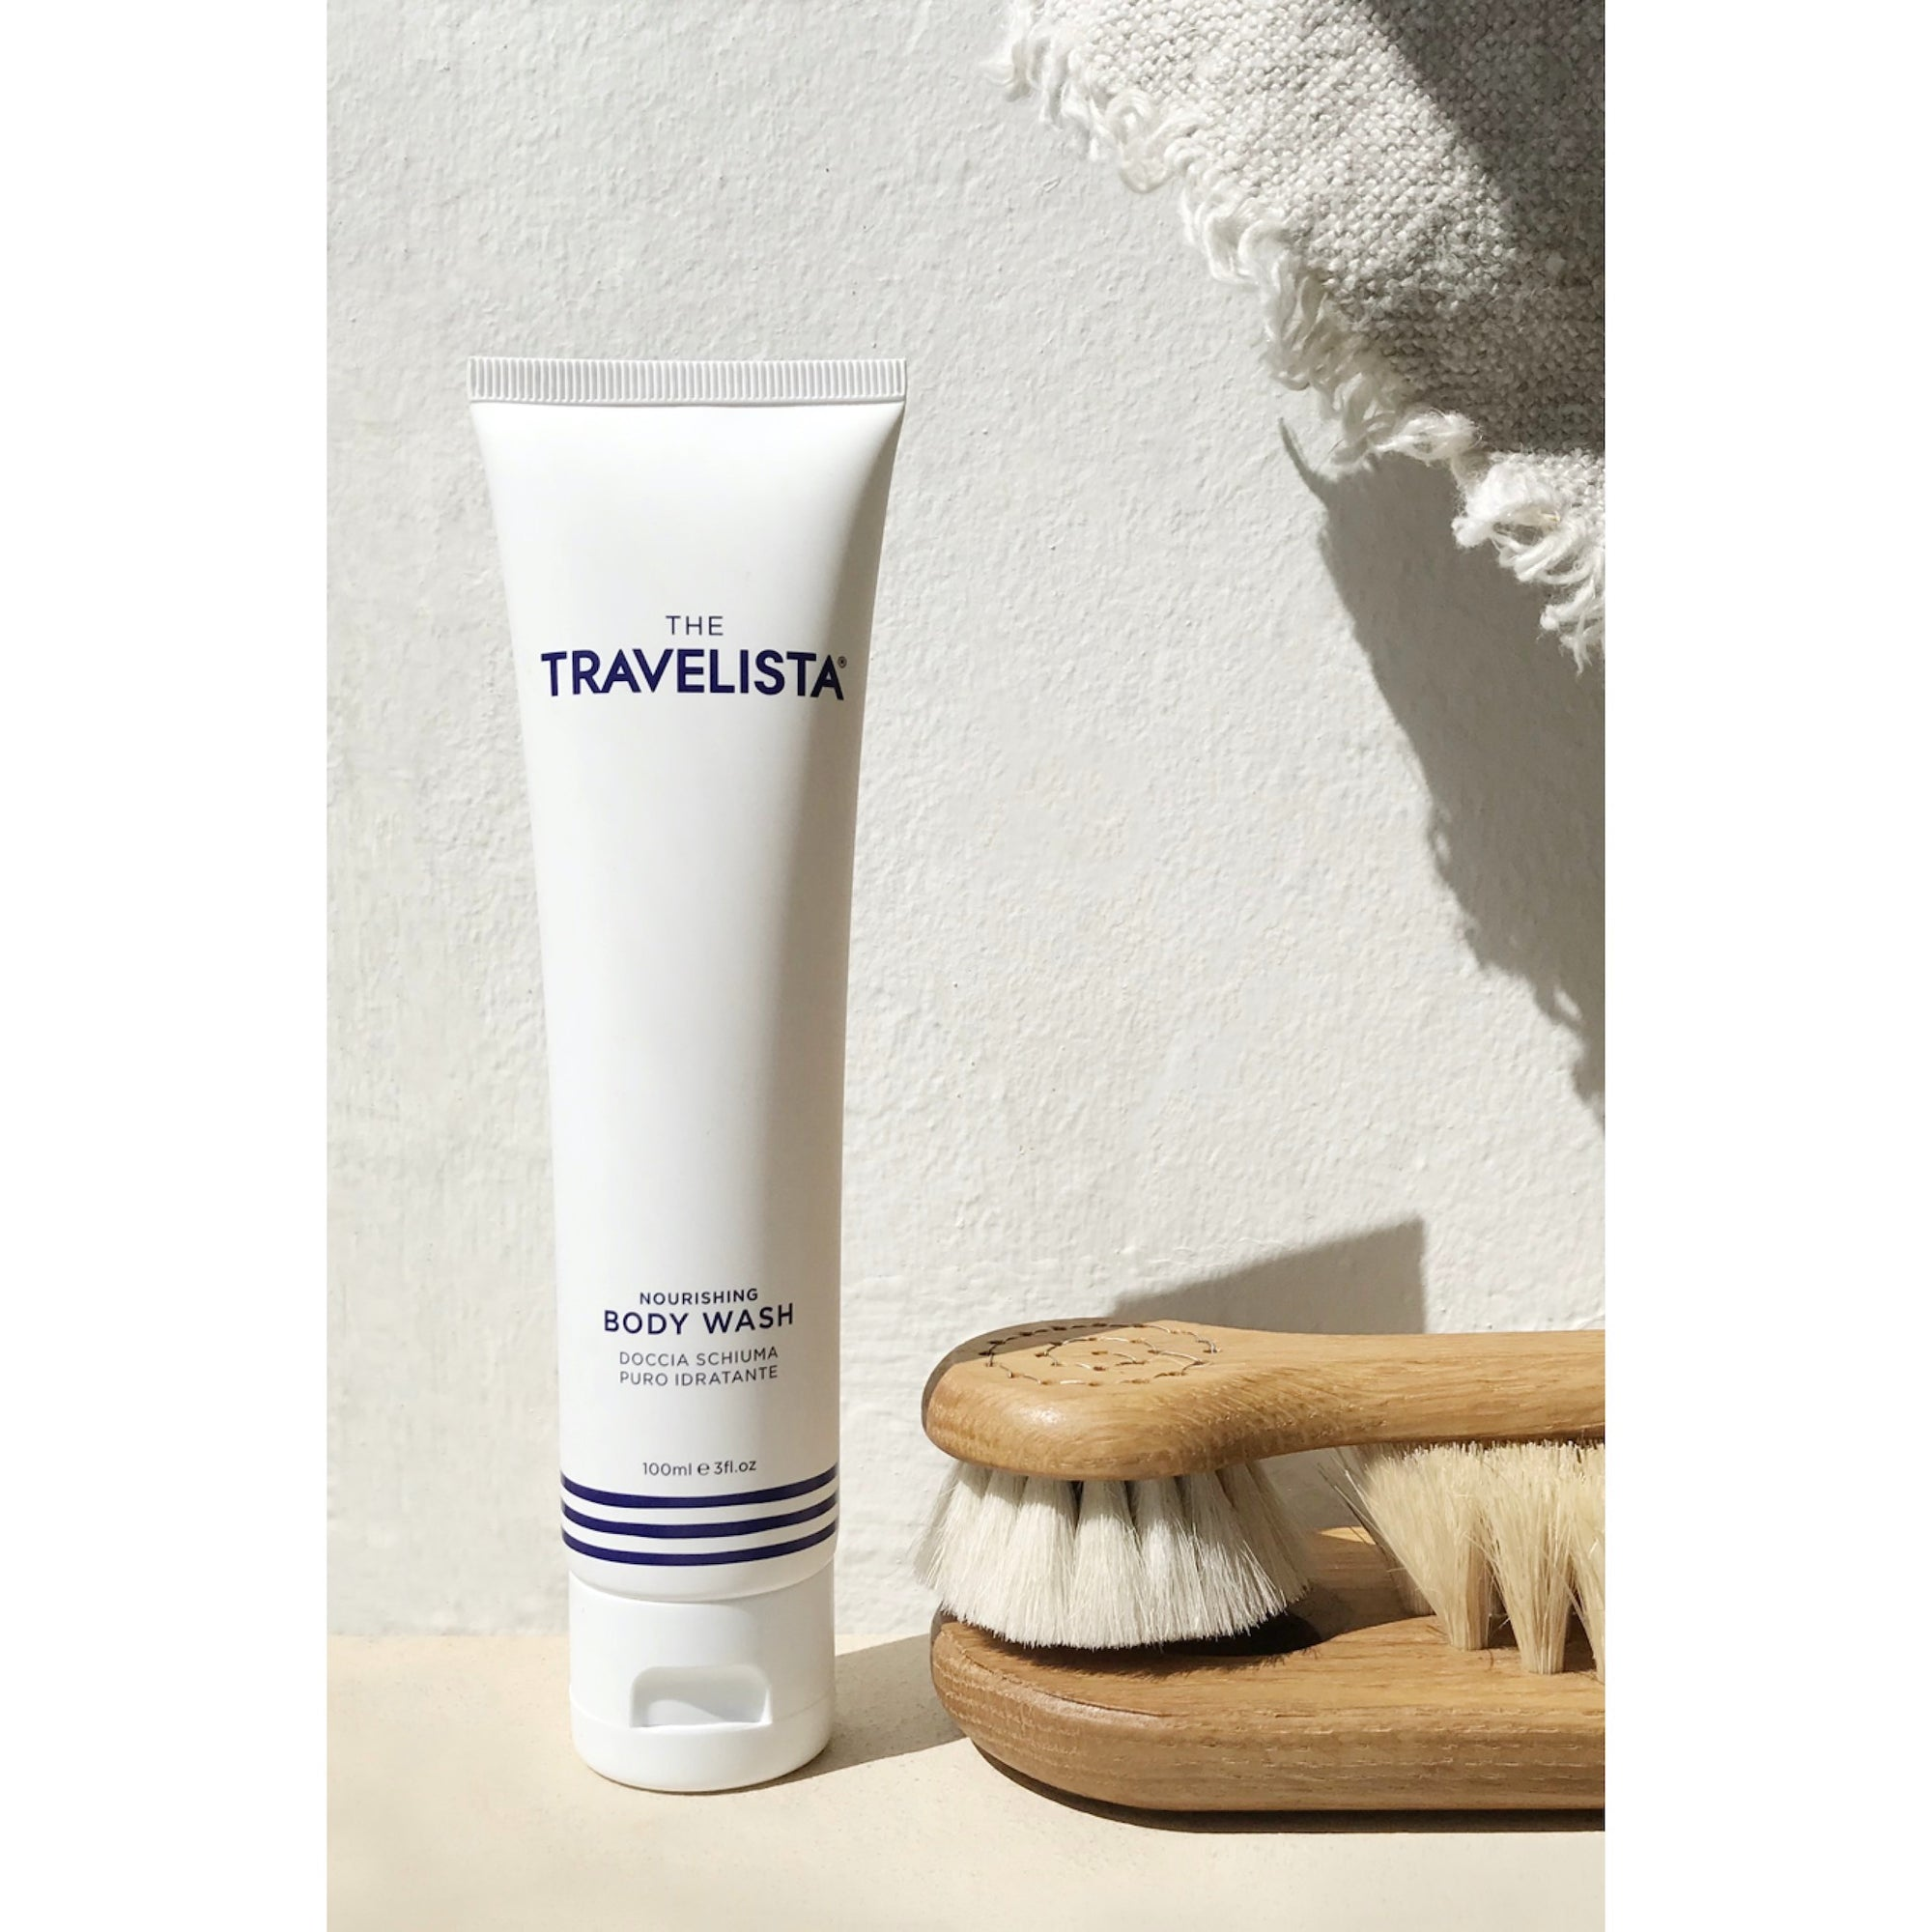 The Travelista Nourishing Body Wash